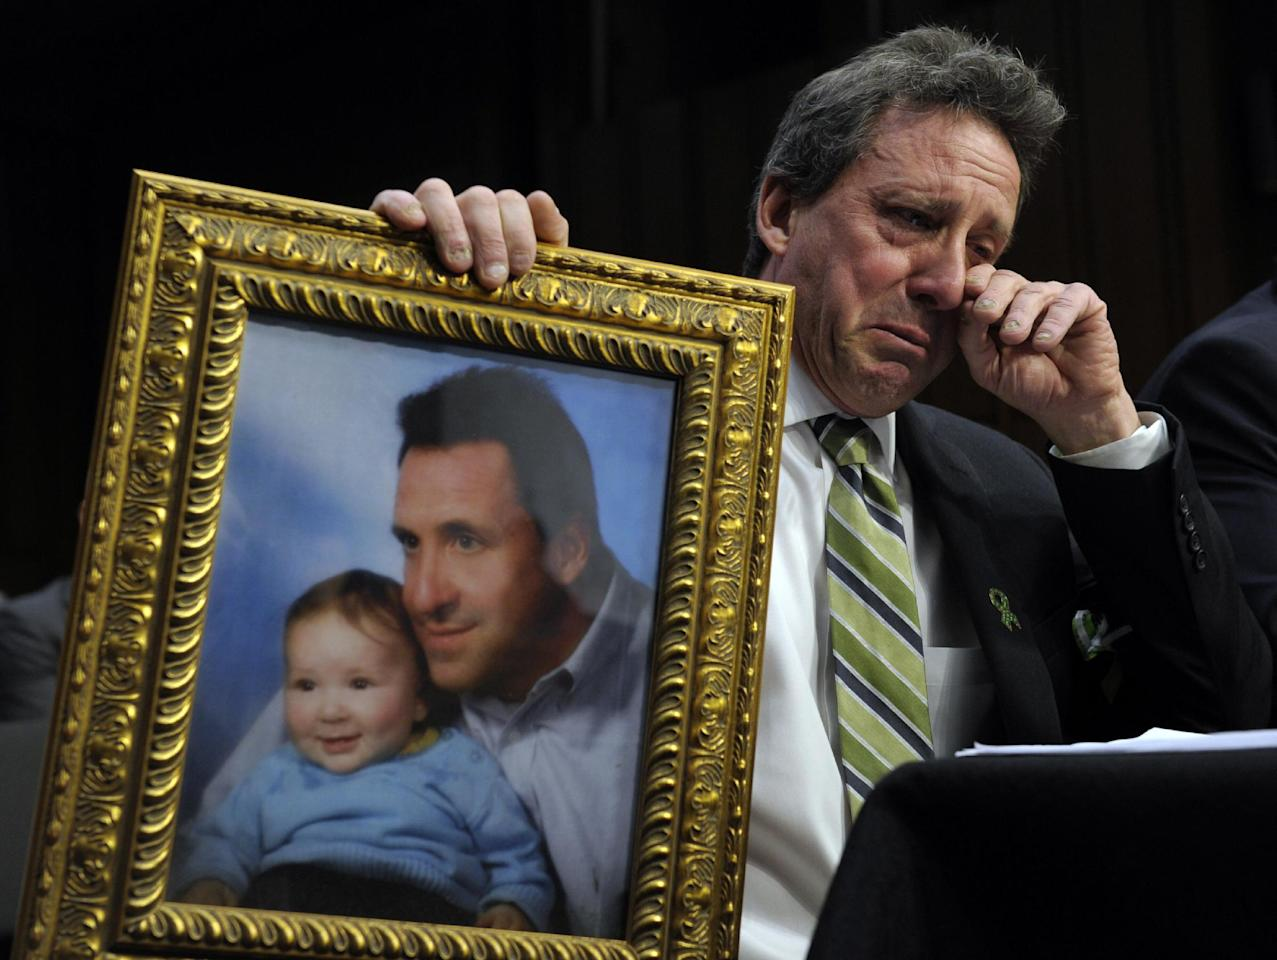 Neil Heslin, the father of a six-year-old boy who was slain in the Sandy Hook massacre in Newtown, Conn., on Dec. 14, holds a picture of himself with his son Jesse and wipes his eye while testifying on Capitol Hill in Washington, Wednesday, Feb. 27, 2013, before the Senate Judiciary Committee on the Assault Weapons Ban of 2013. (AP Photo/Susan Walsh)